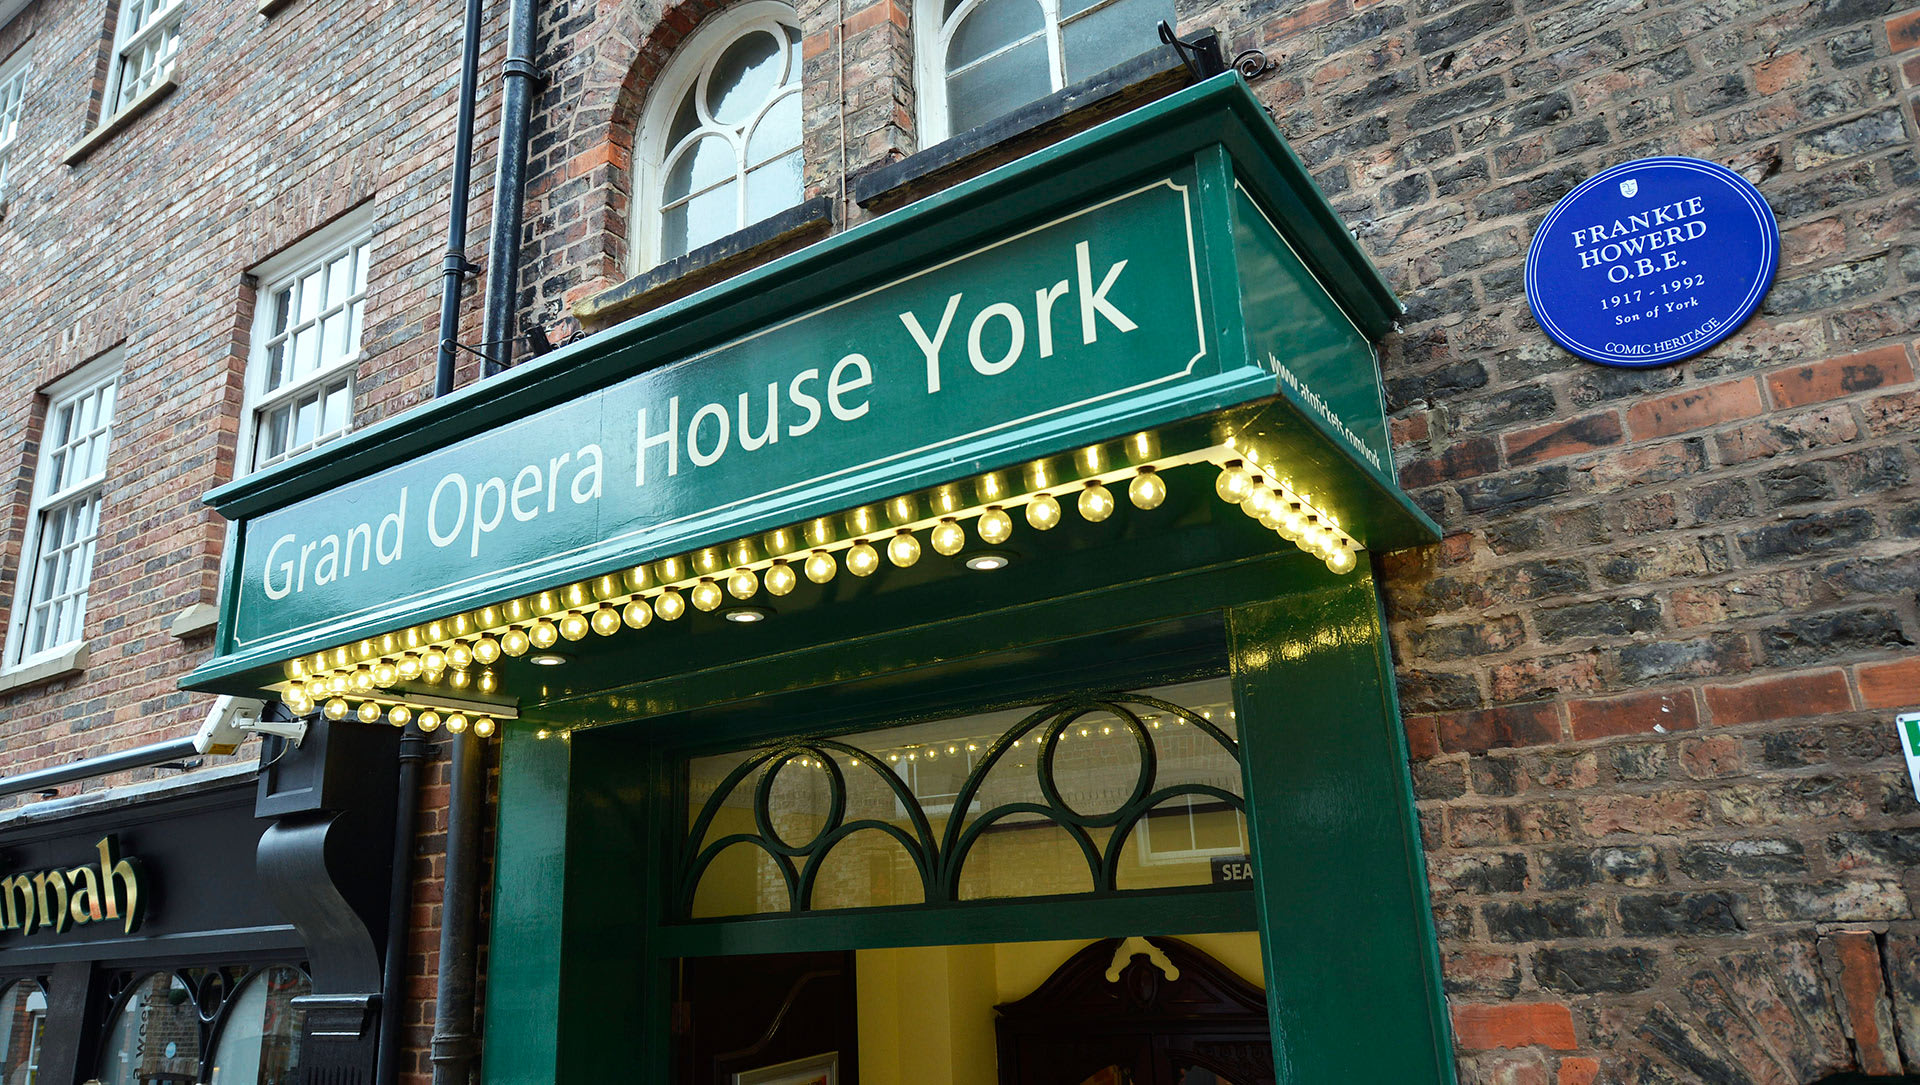 Grand Opera House York External